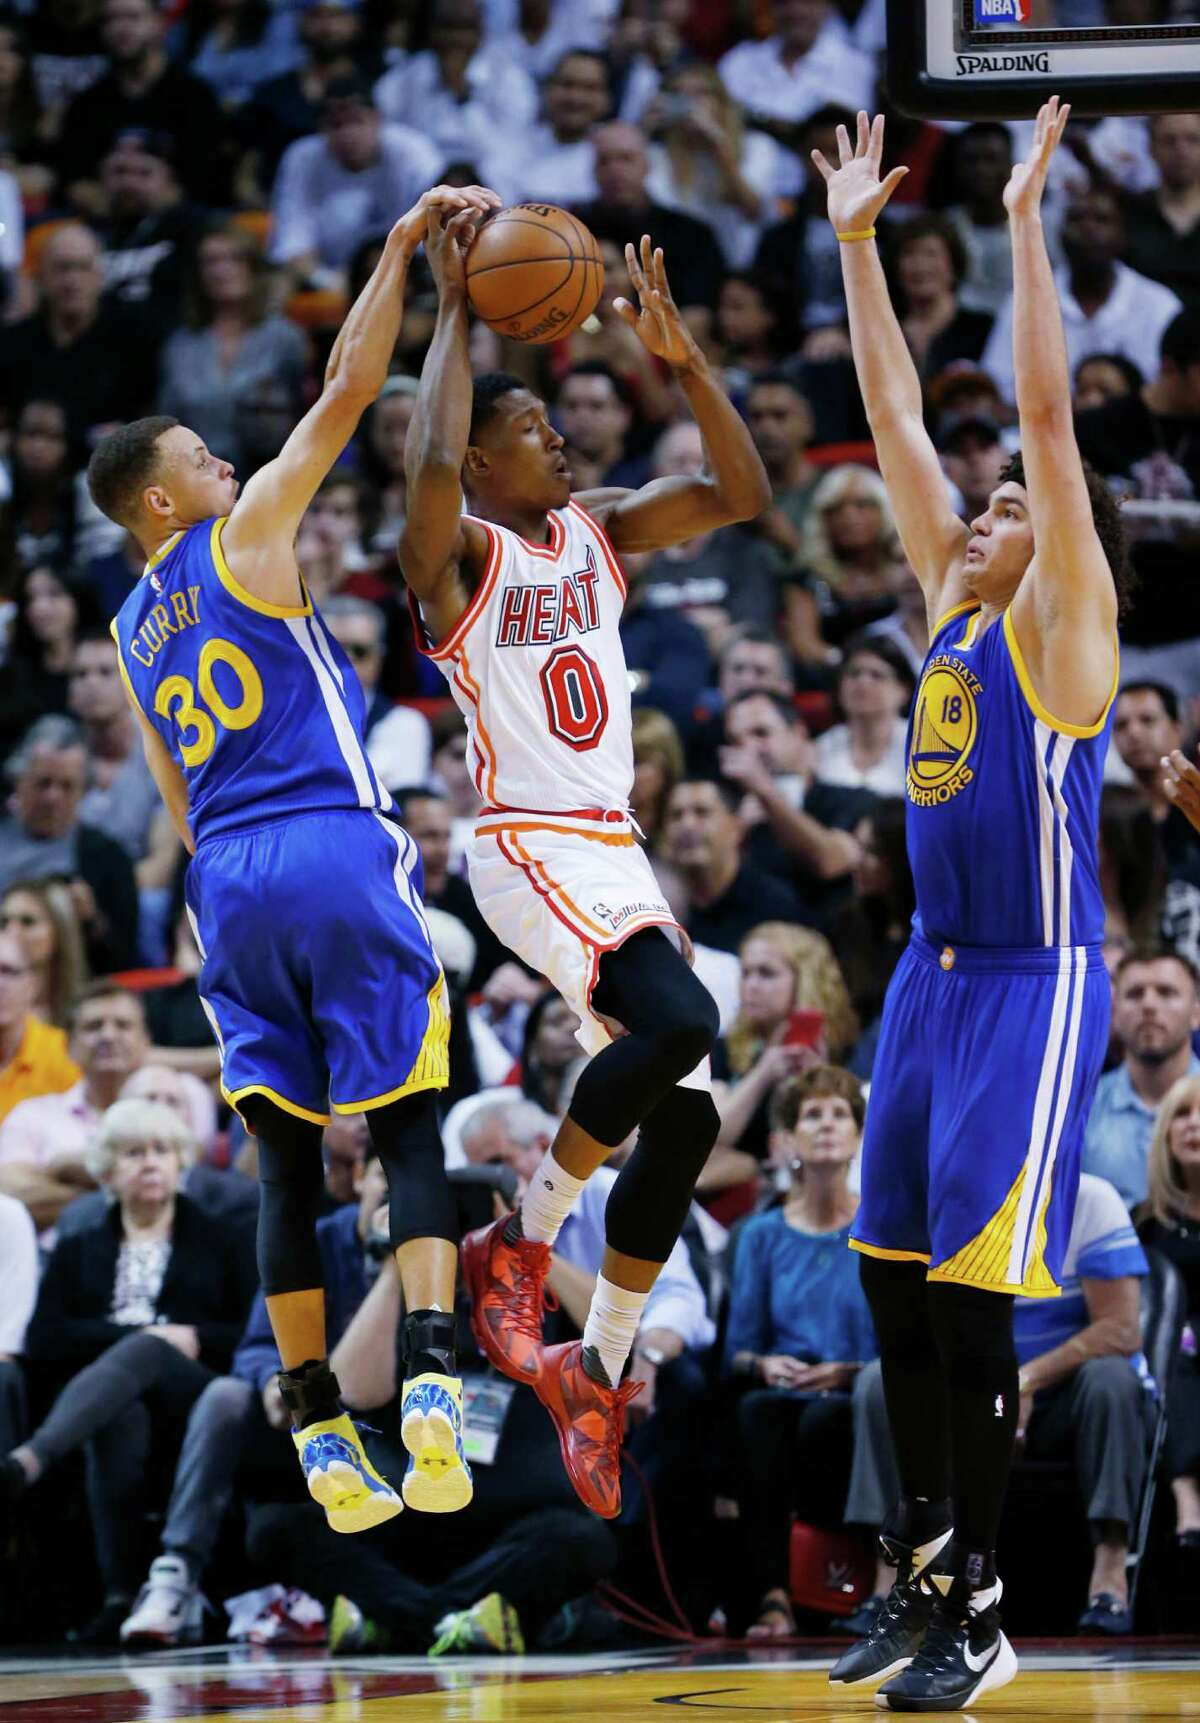 Miami Heat guard Josh Richardson (0) goes up for a shot against Golden State Warriors guard Stephen Curry (30) and center Anderson Varejao (18) during the first half of an NBA basketball game Wednesday, Feb. 24, 2016, in Miami.